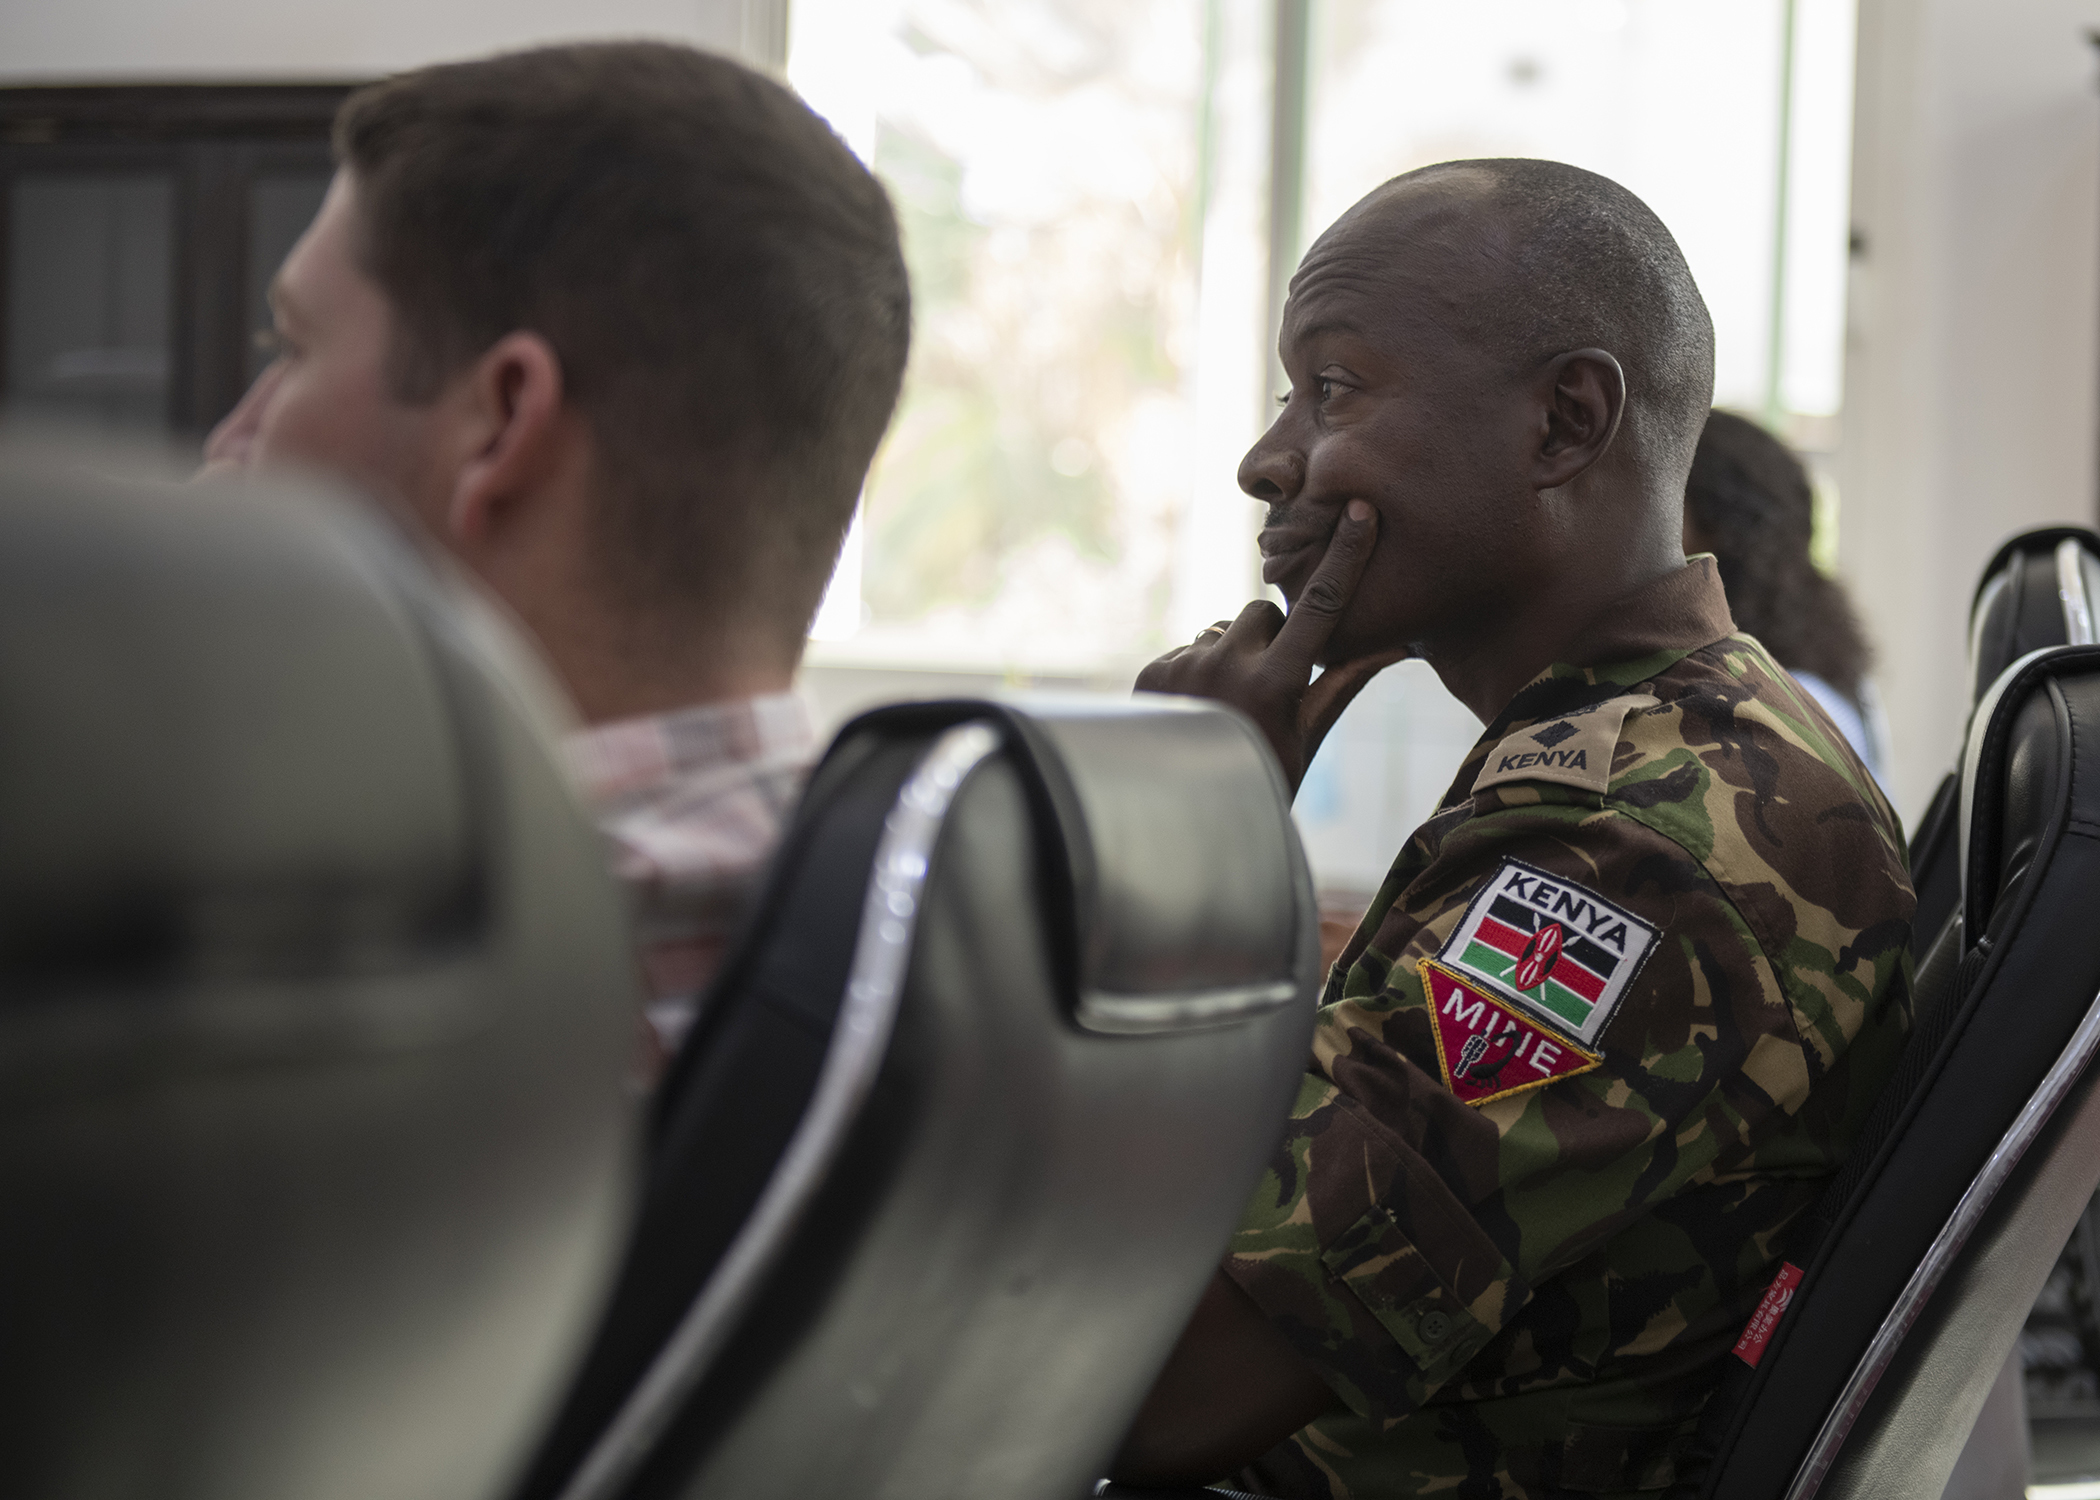 Kenya Army Lt. Col. Ndegwa Mburu, a foreign liaison officer (FLO) assigned to Combined Joint Task Force-Horn of Africa (CJTF-HOA), listens during the first-ever formal meeting between FLOs and U.S. military members assigned to CJTF-HOA, and officials from the Intergovernmental Authority on Development in Djibouti, Jan. 16, 2019. The purpose of the meeting was for both parties to familiarize themselves with each other's missions and goals through a short information exchange and set the stance for future meetings. (U.S. Air Force photo by Tech. Sgt. Shawn Nickel)